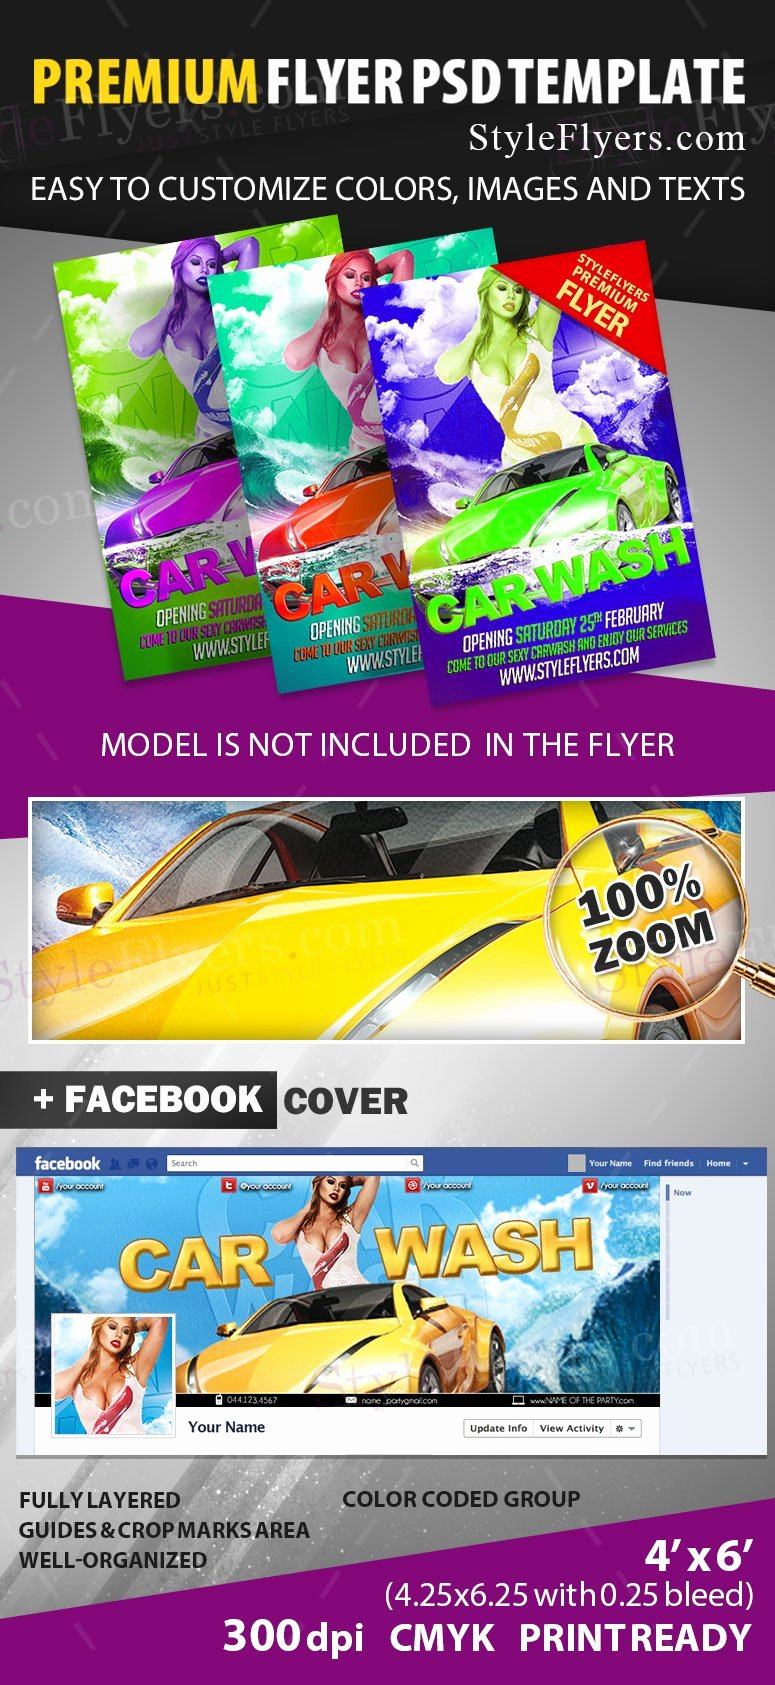 Car Wash Flyer Template New Car Wash Psd Flyer Template Styleflyers